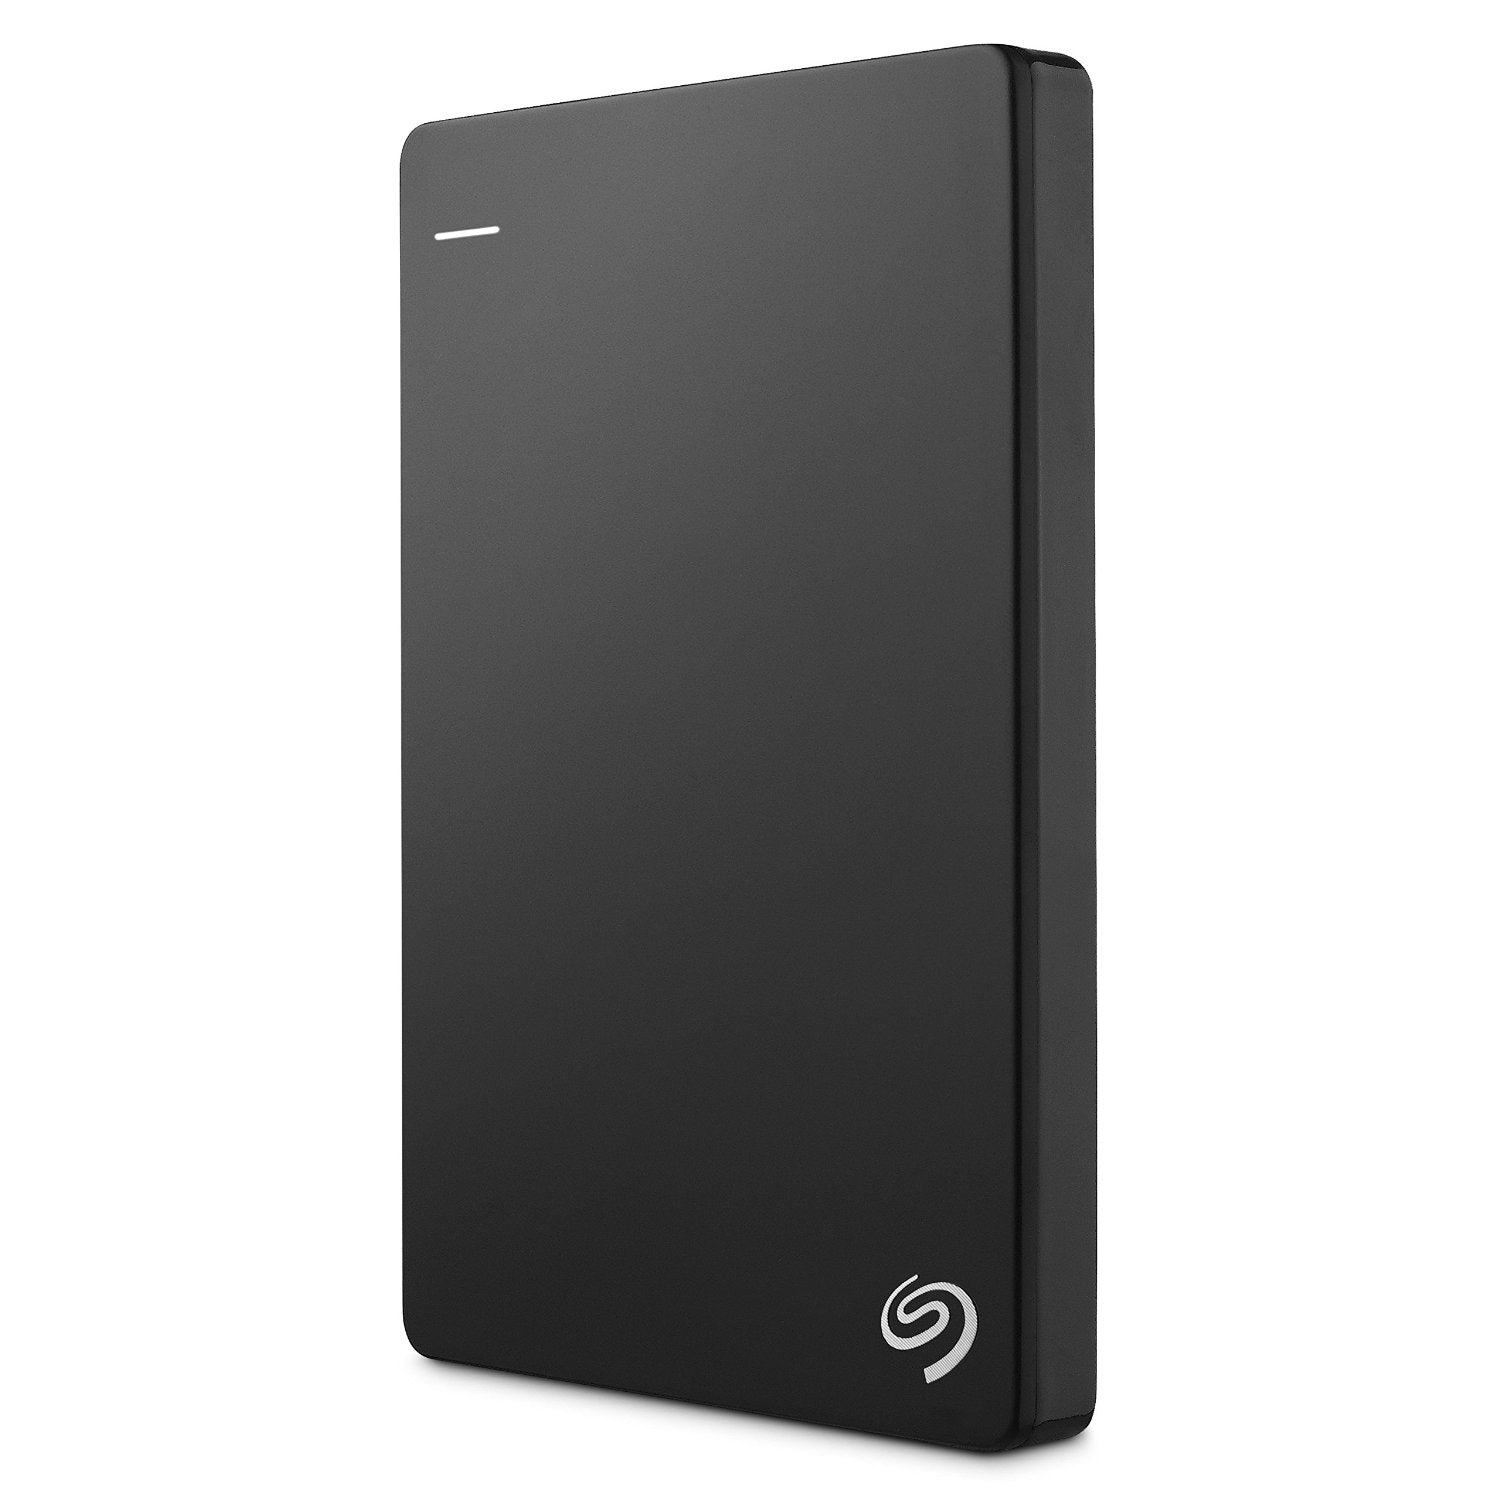 Seagate Backup Plus Slim 2TB Portable External Hard Drive HDD (Black)